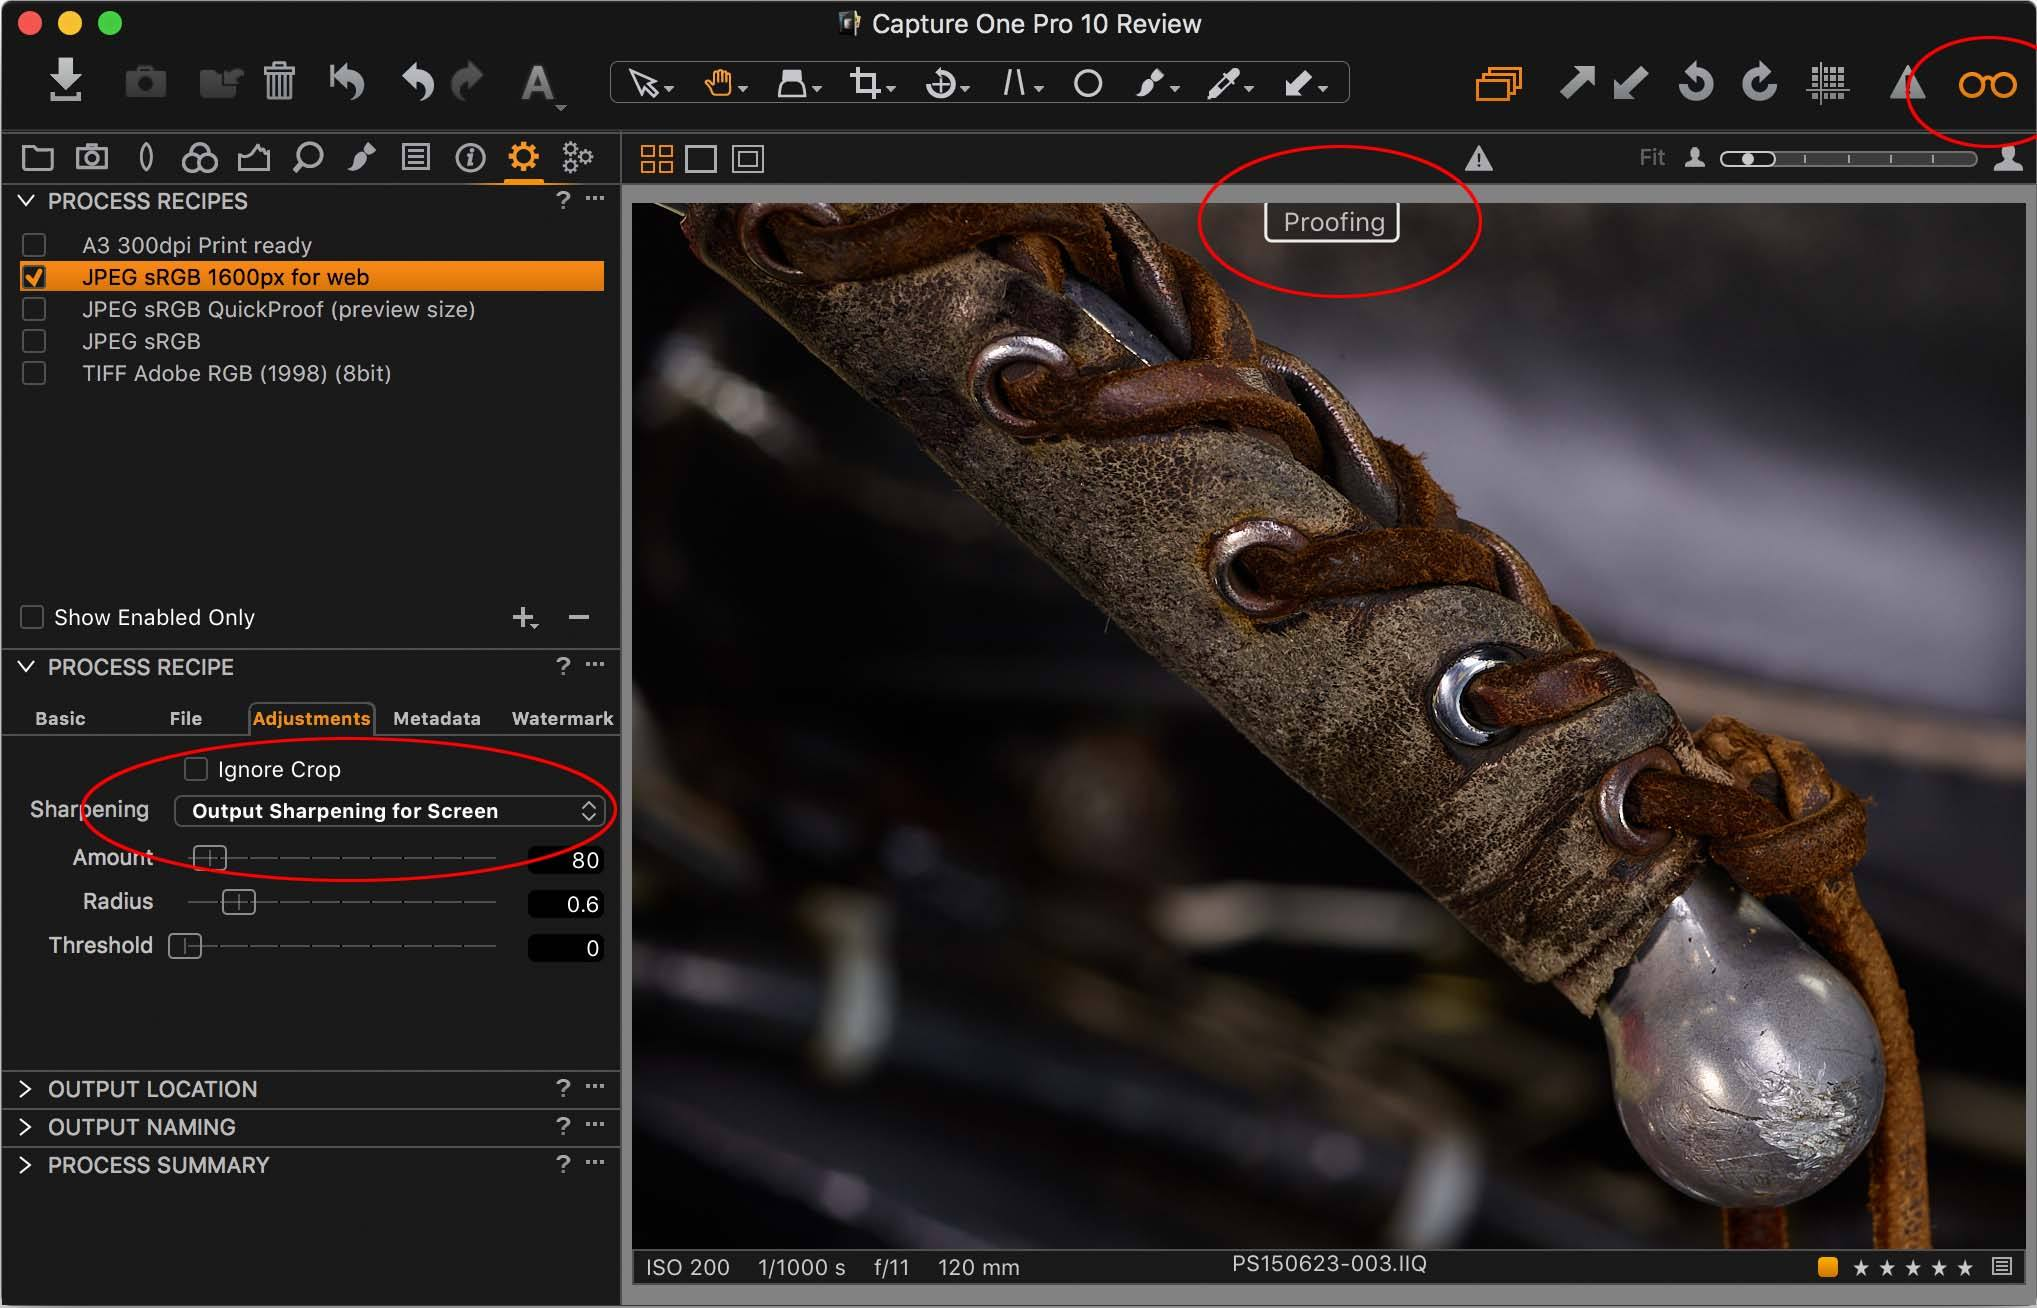 capture one pro 10, recipe proofing